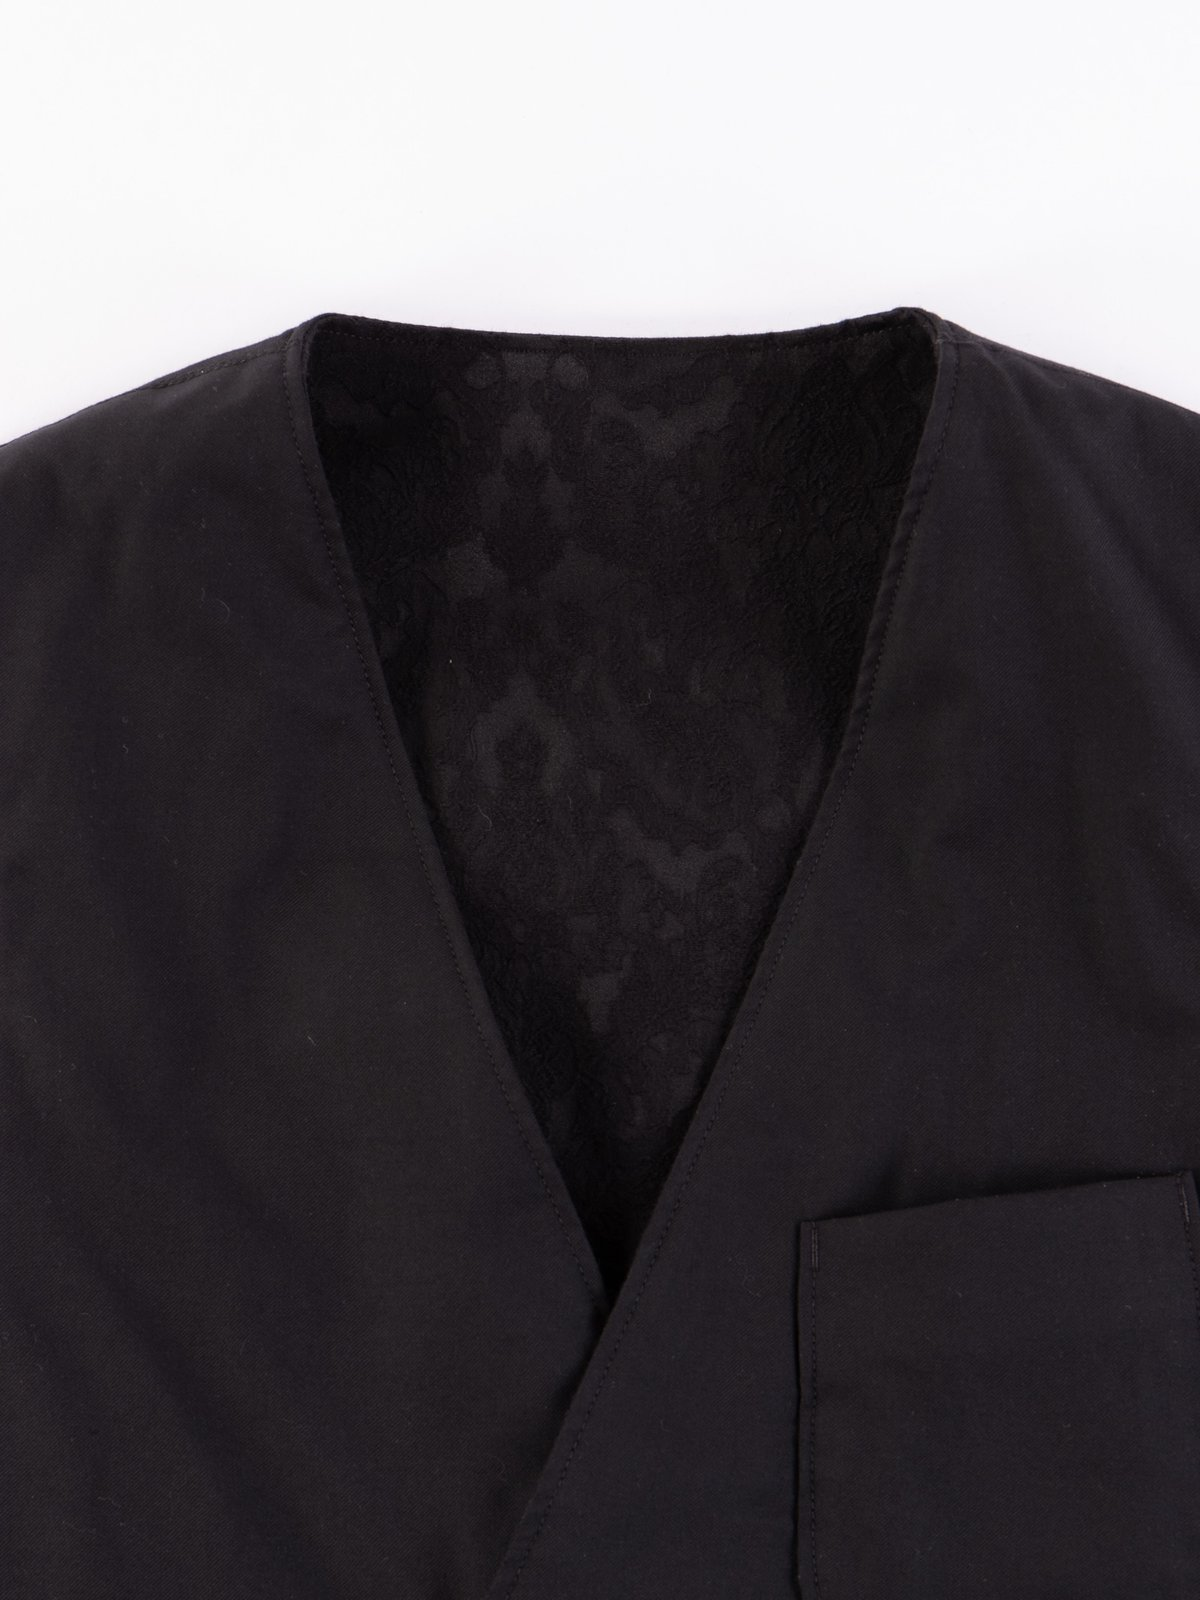 Black Worsted Wool Gabardine Reversible Vest - Image 3